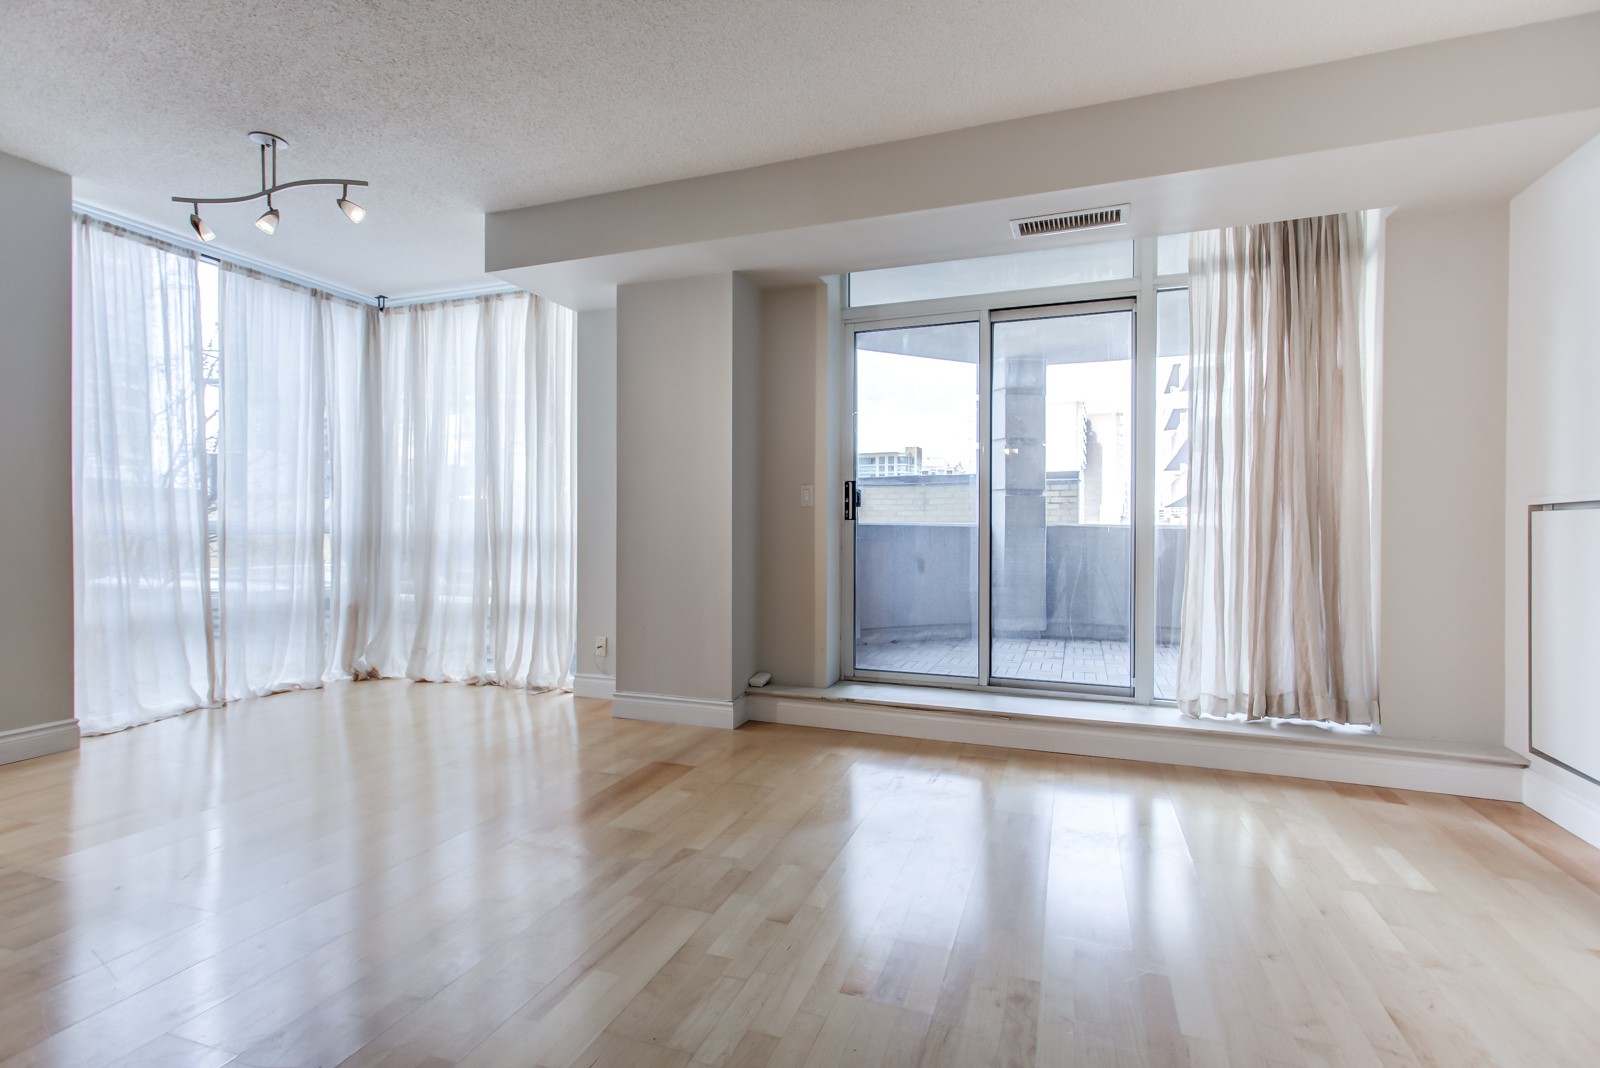 Brightly lit empty living room with gray walls and hardwood floors of 20 Collier St Unit 408.